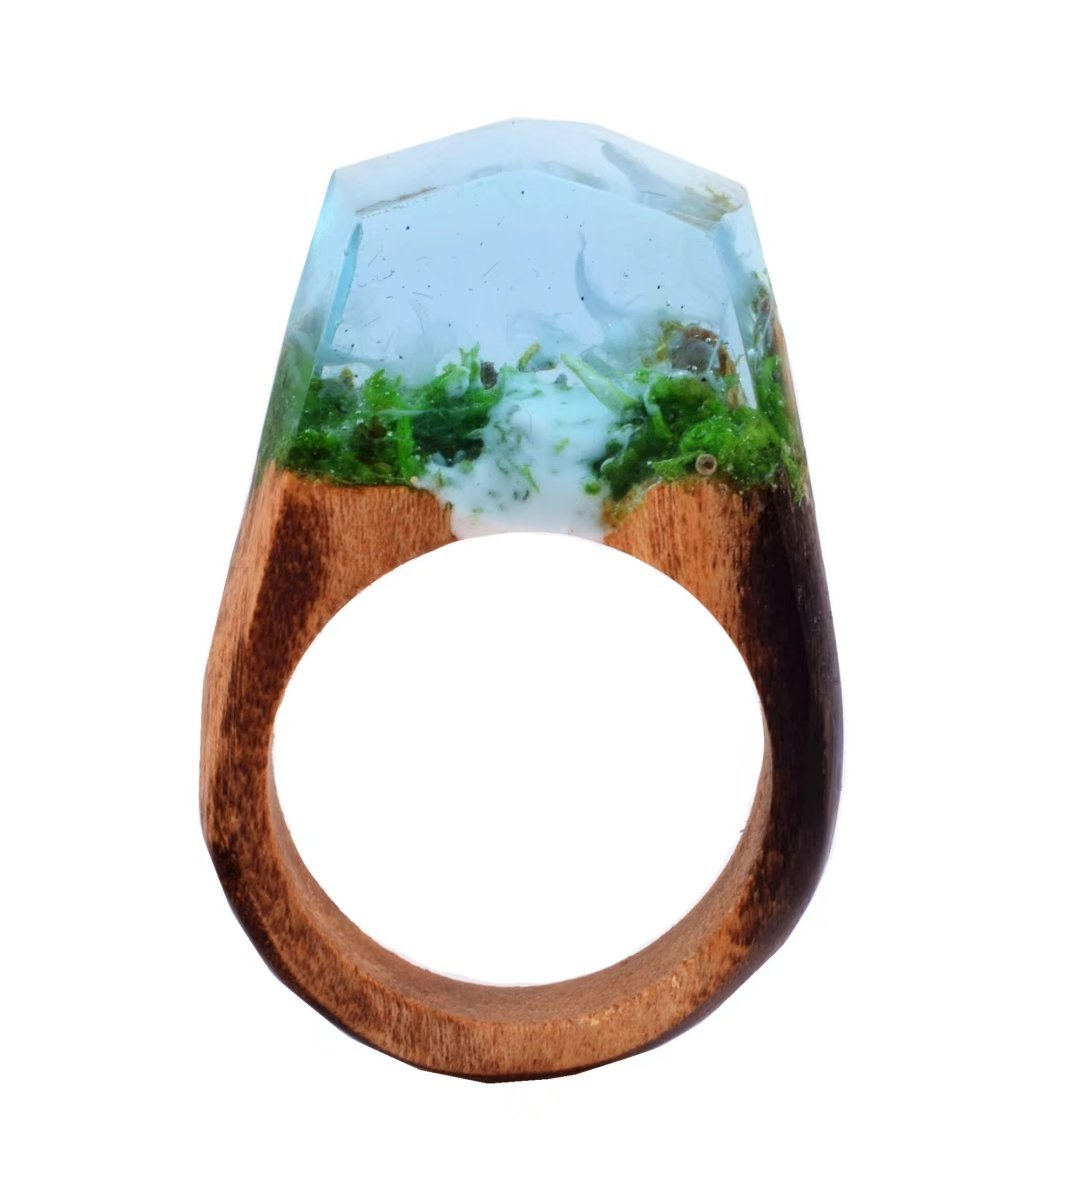 Heyou Love Handmade Wood Resin Ring With Nature Waterfall Scenery Landscape Inside Jewelry